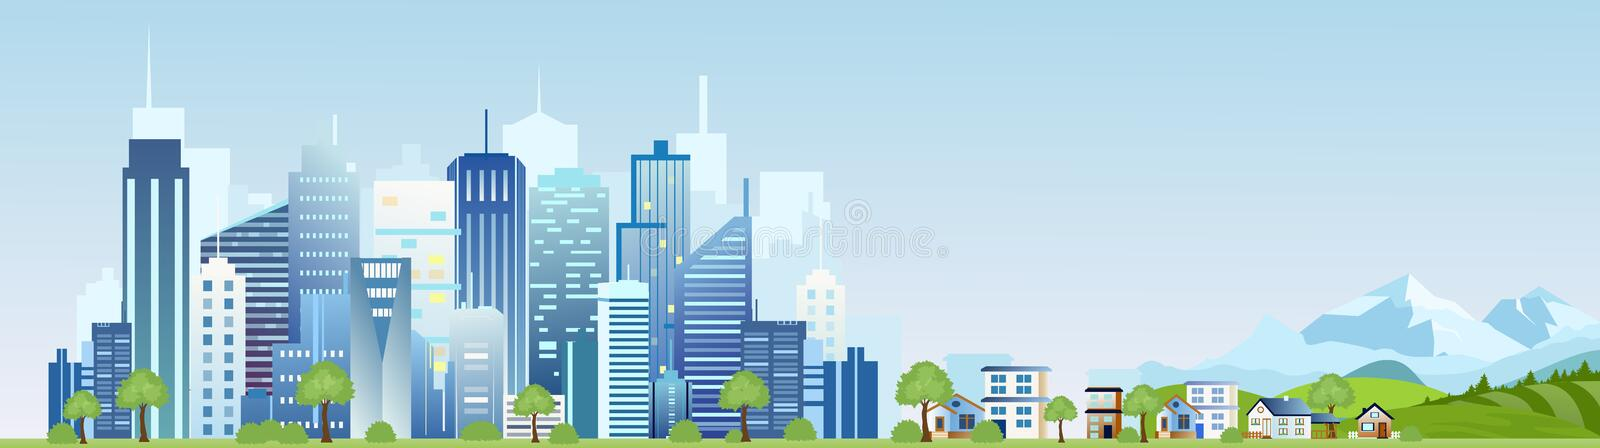 Vector illustration of urban industrial city landscape. Big modern city with skyscrapers with mountains and country. Houses in flat cartoon style vector illustration